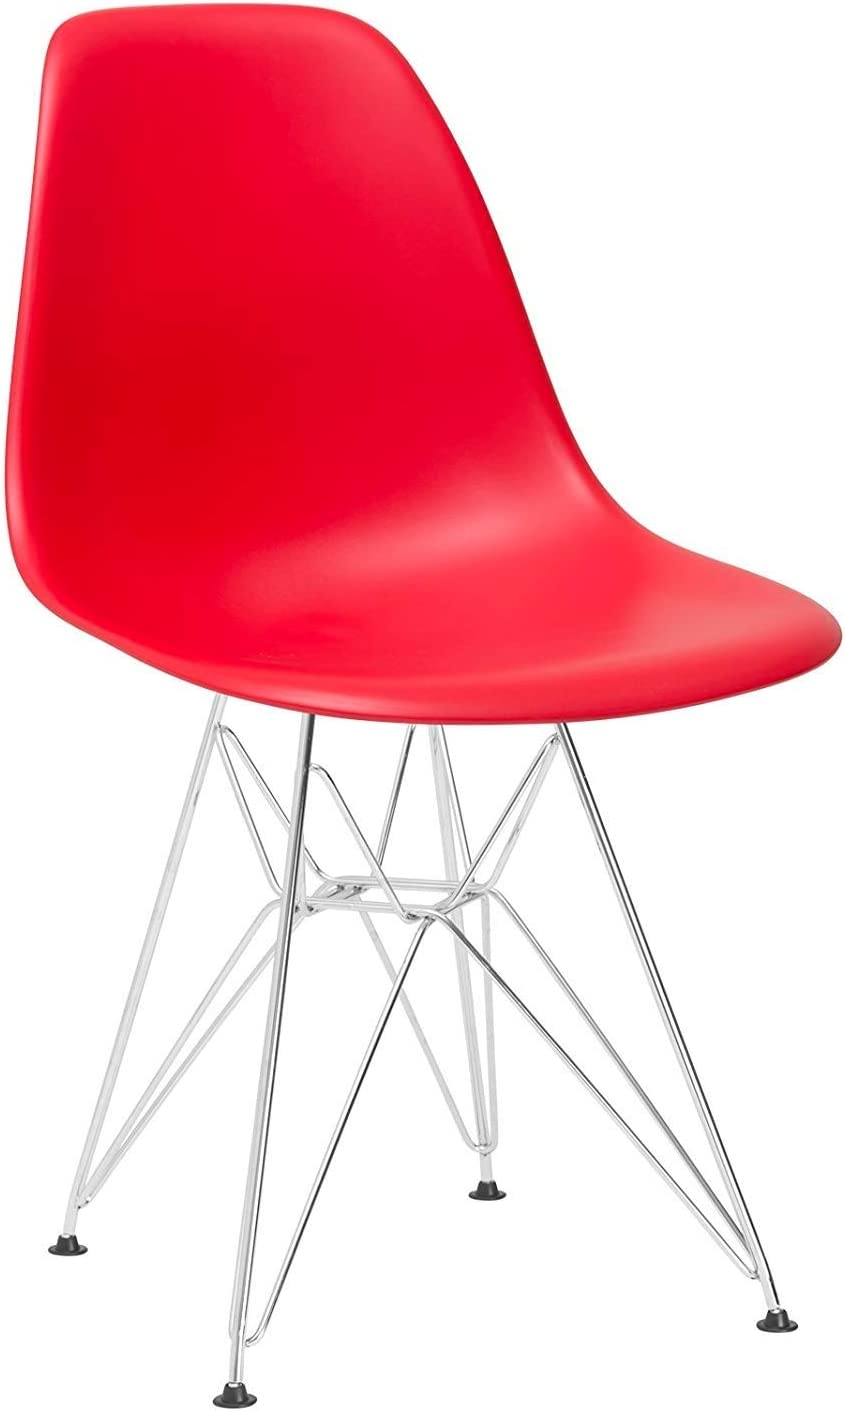 HWZQHJY Plastic Chair Very popular with Chrome Max 74% OFF Room Kitchen for Living Base